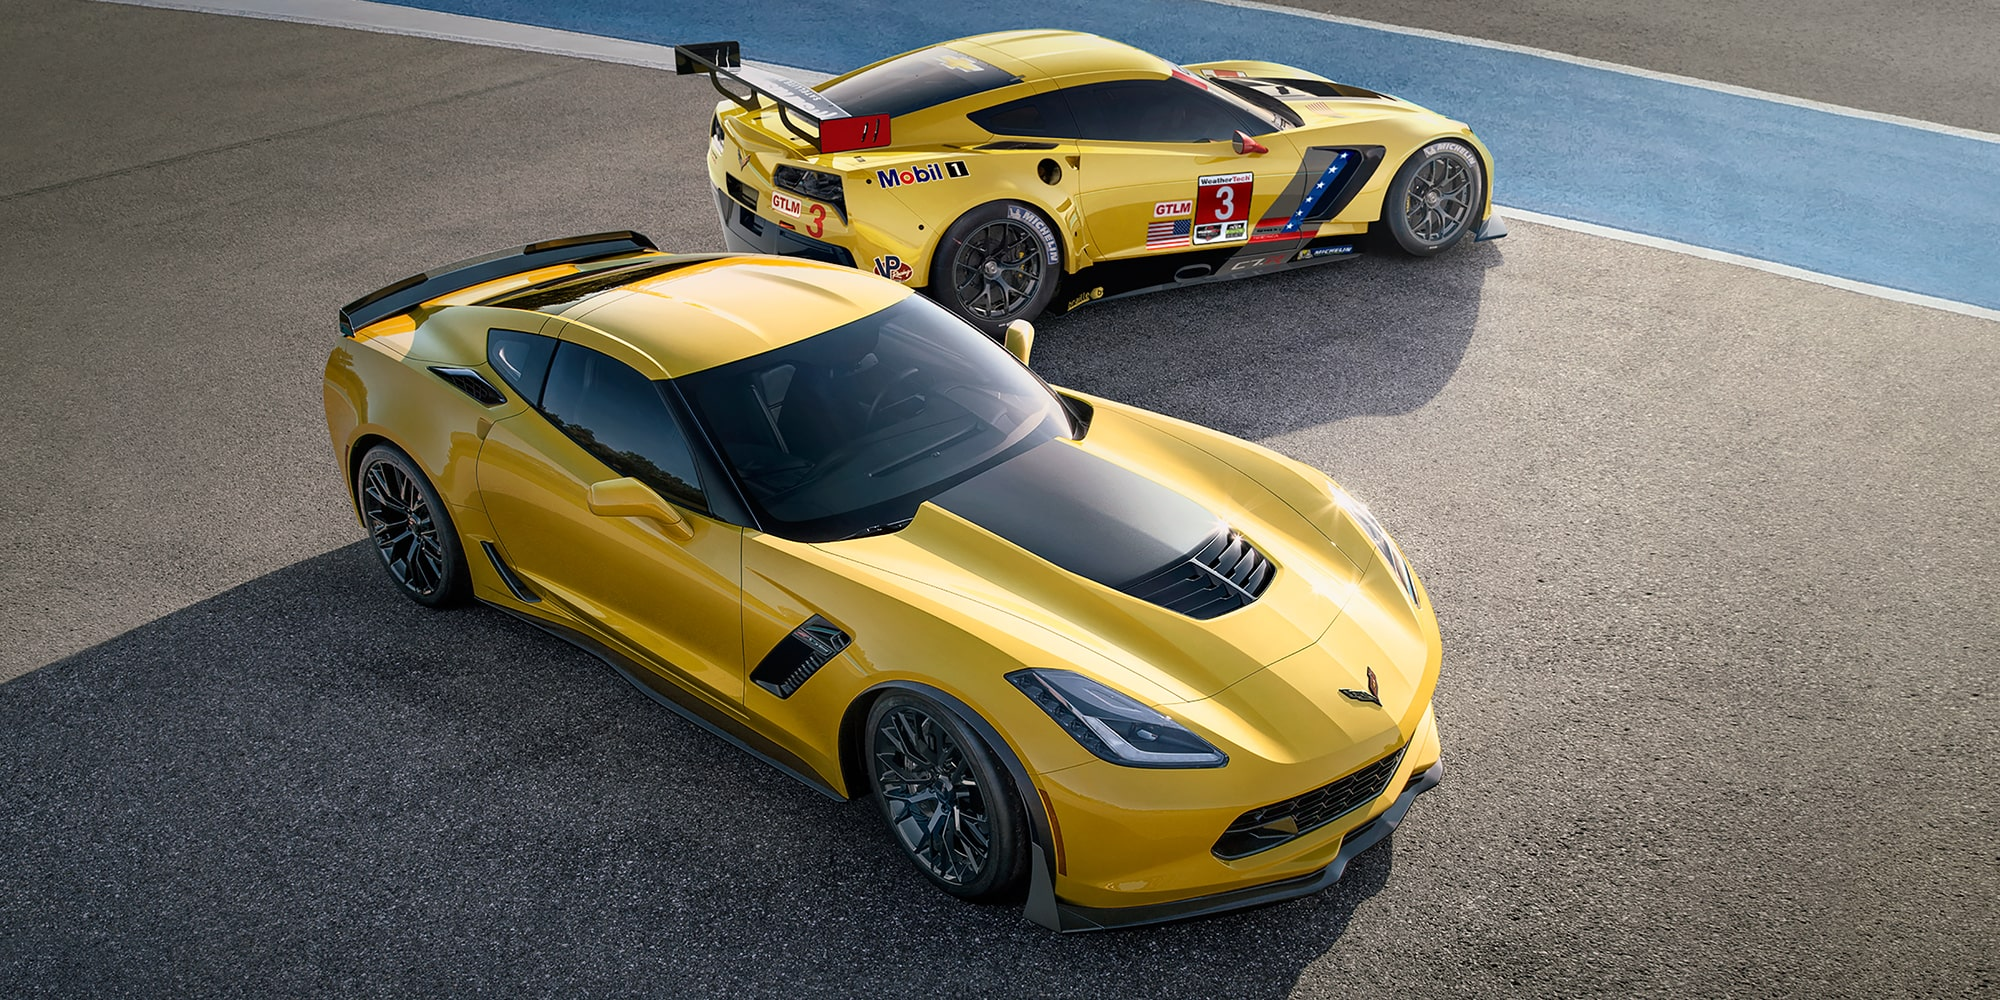 Superbe 2019 Corvette Z06 Super Car Performance: Top